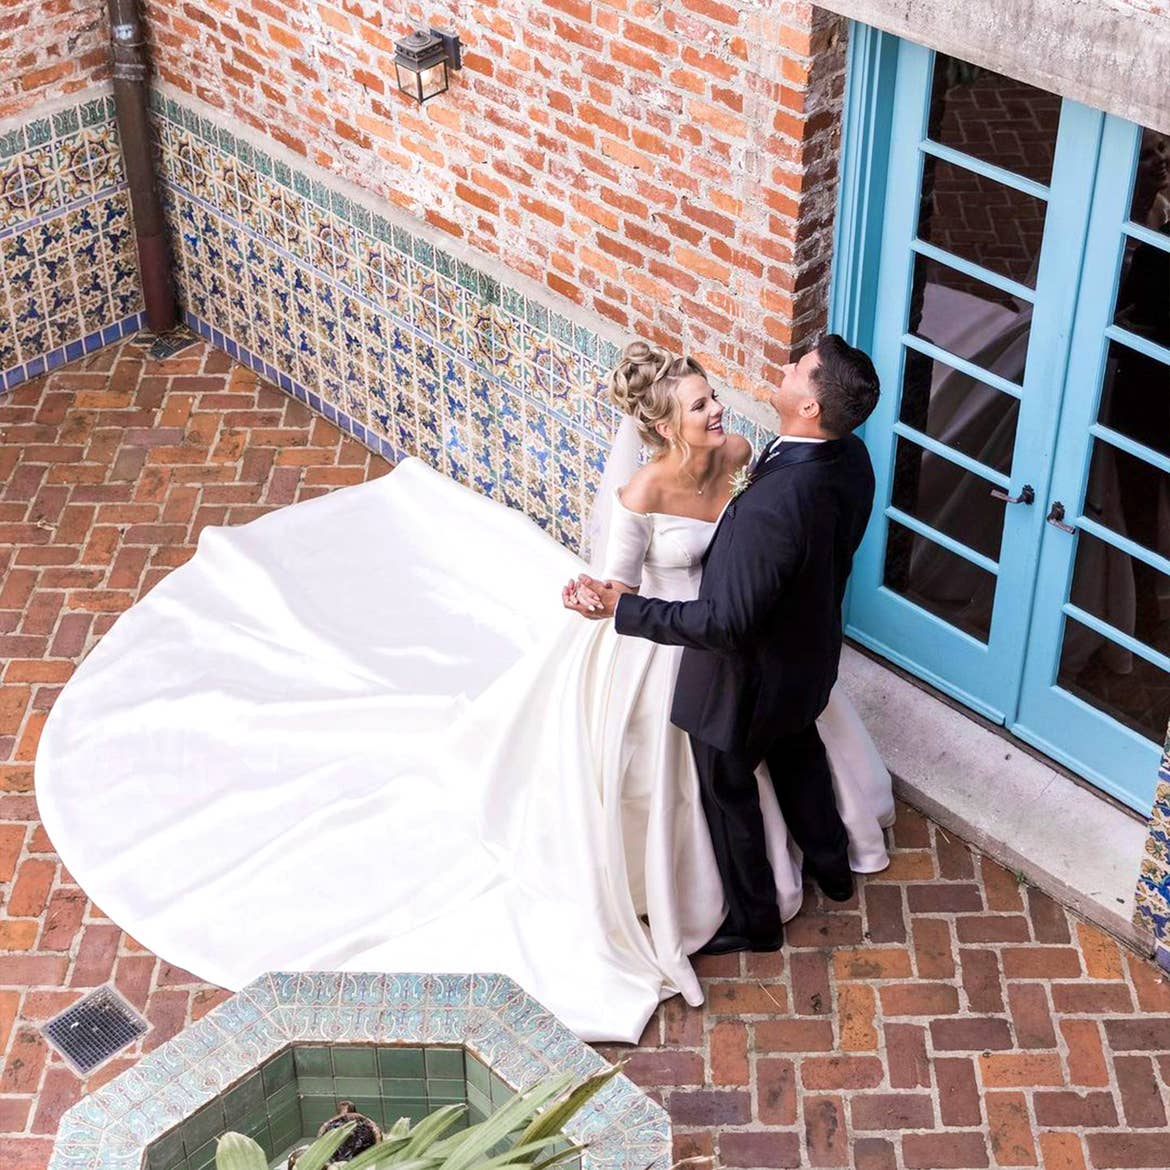 A Latinx groom wearing a black suit and (right) and a caucasian bride with a long train (left) dance with each other in front of a brick facade.